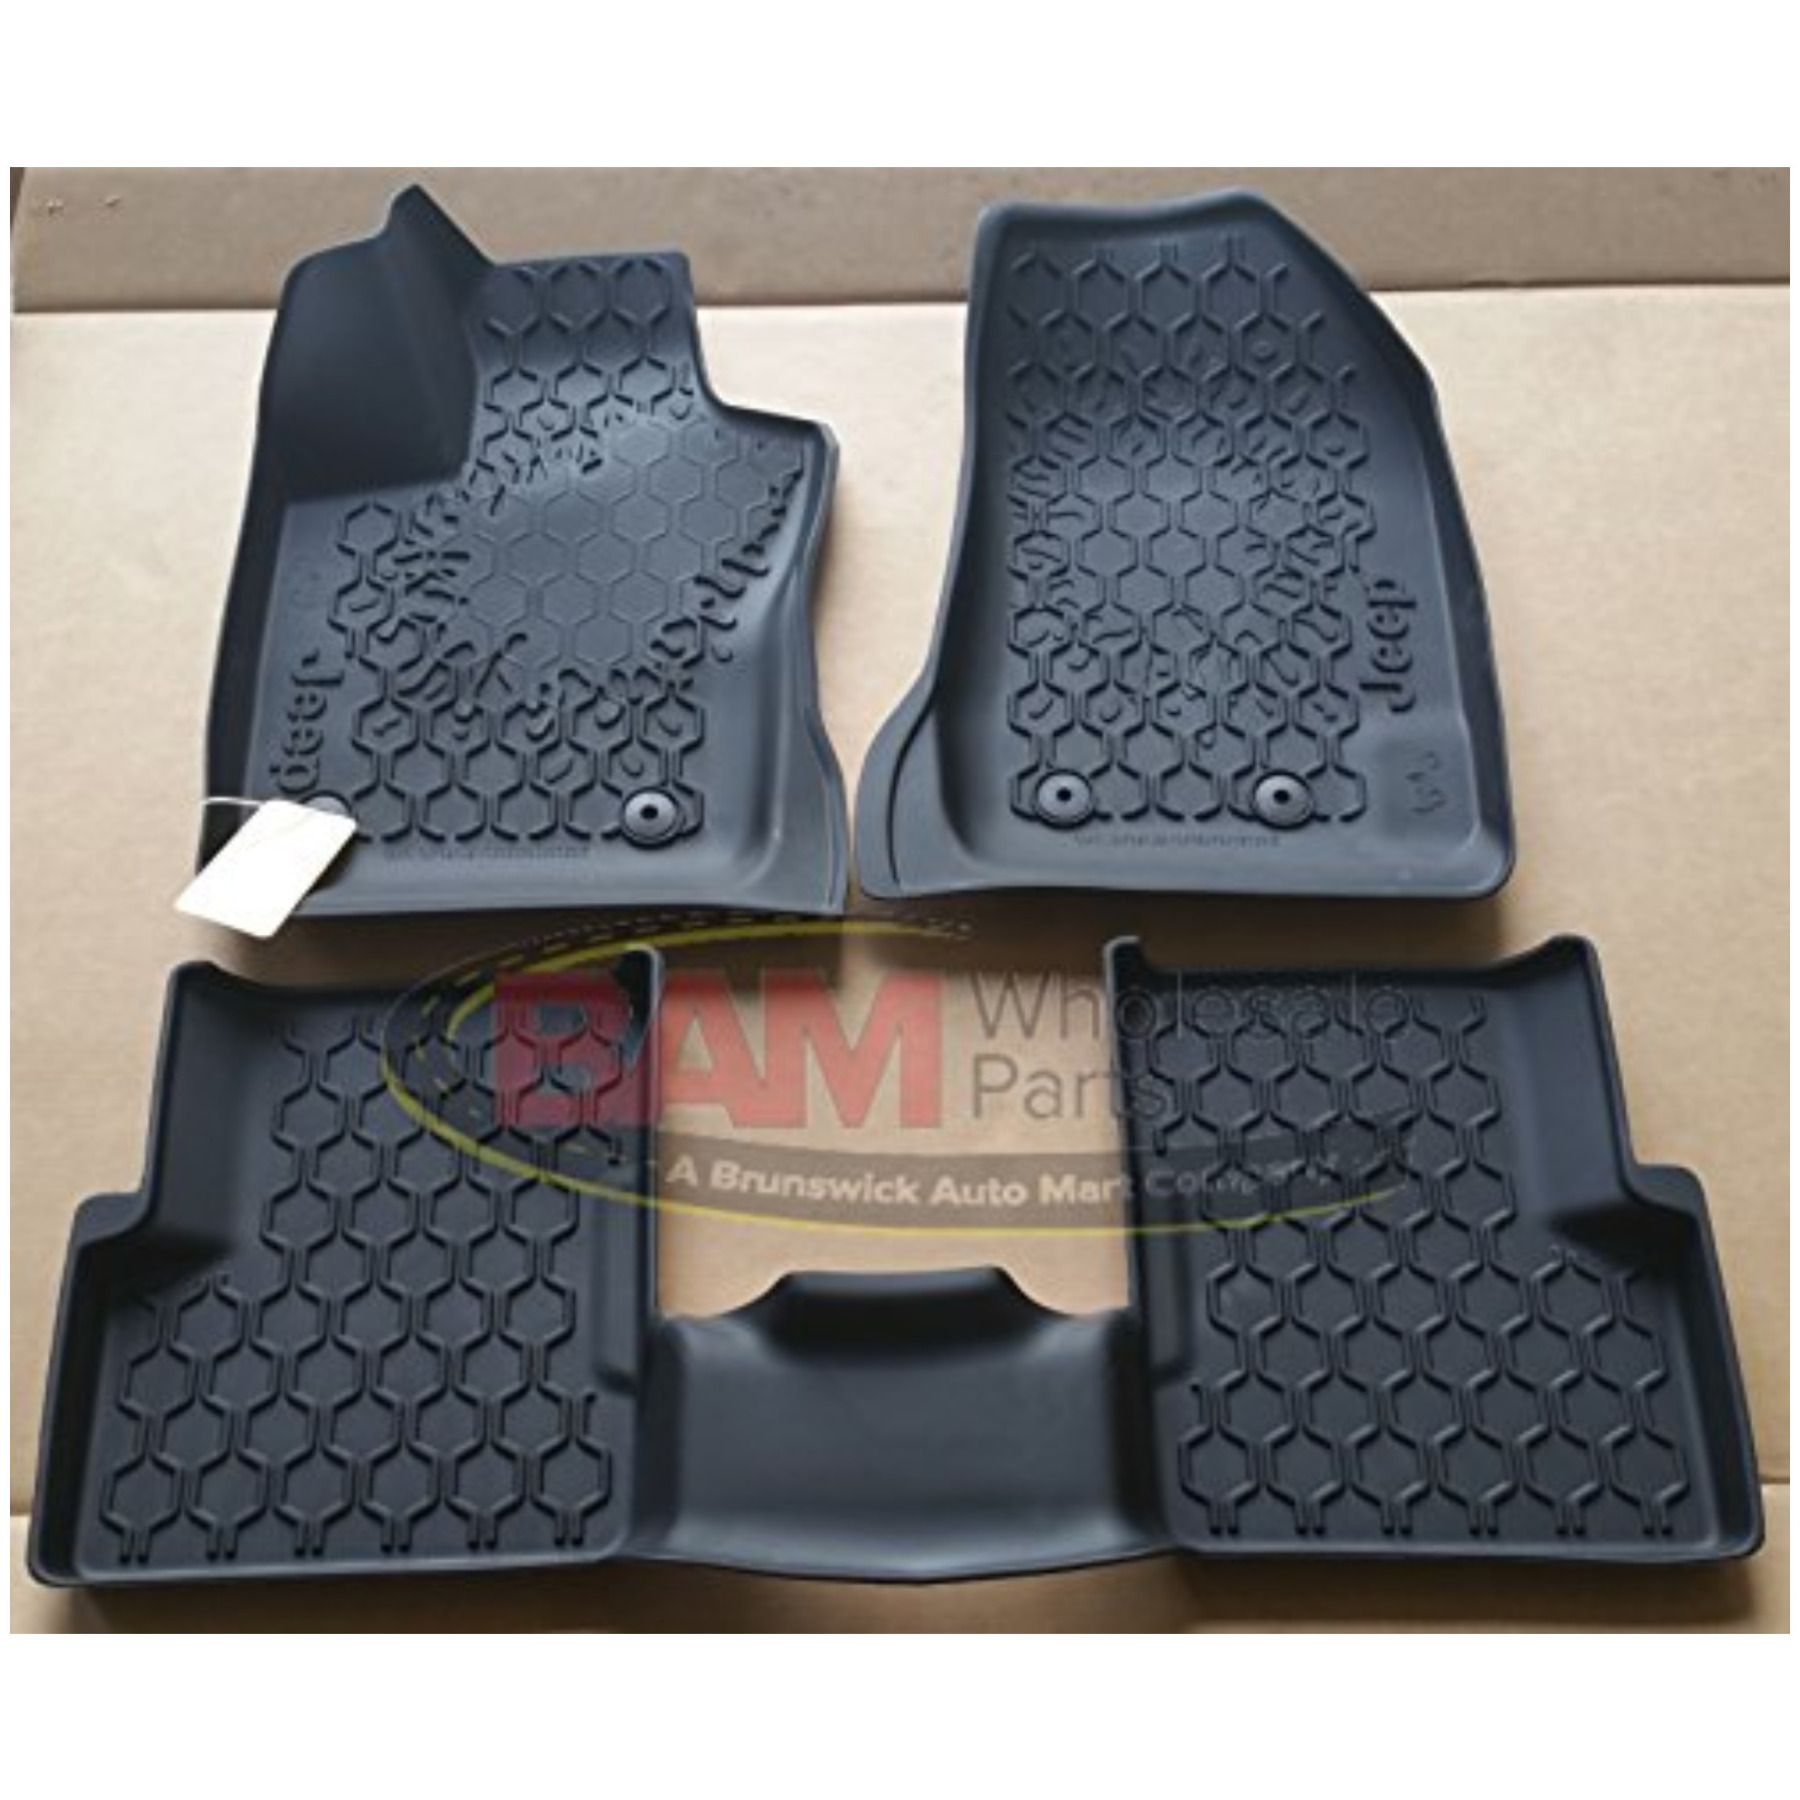 mats strikingeathertech row weathertech mercedes of molded floorliner amazon class size full measured liners pictures ideas floor ebay striking for liner black laser glc